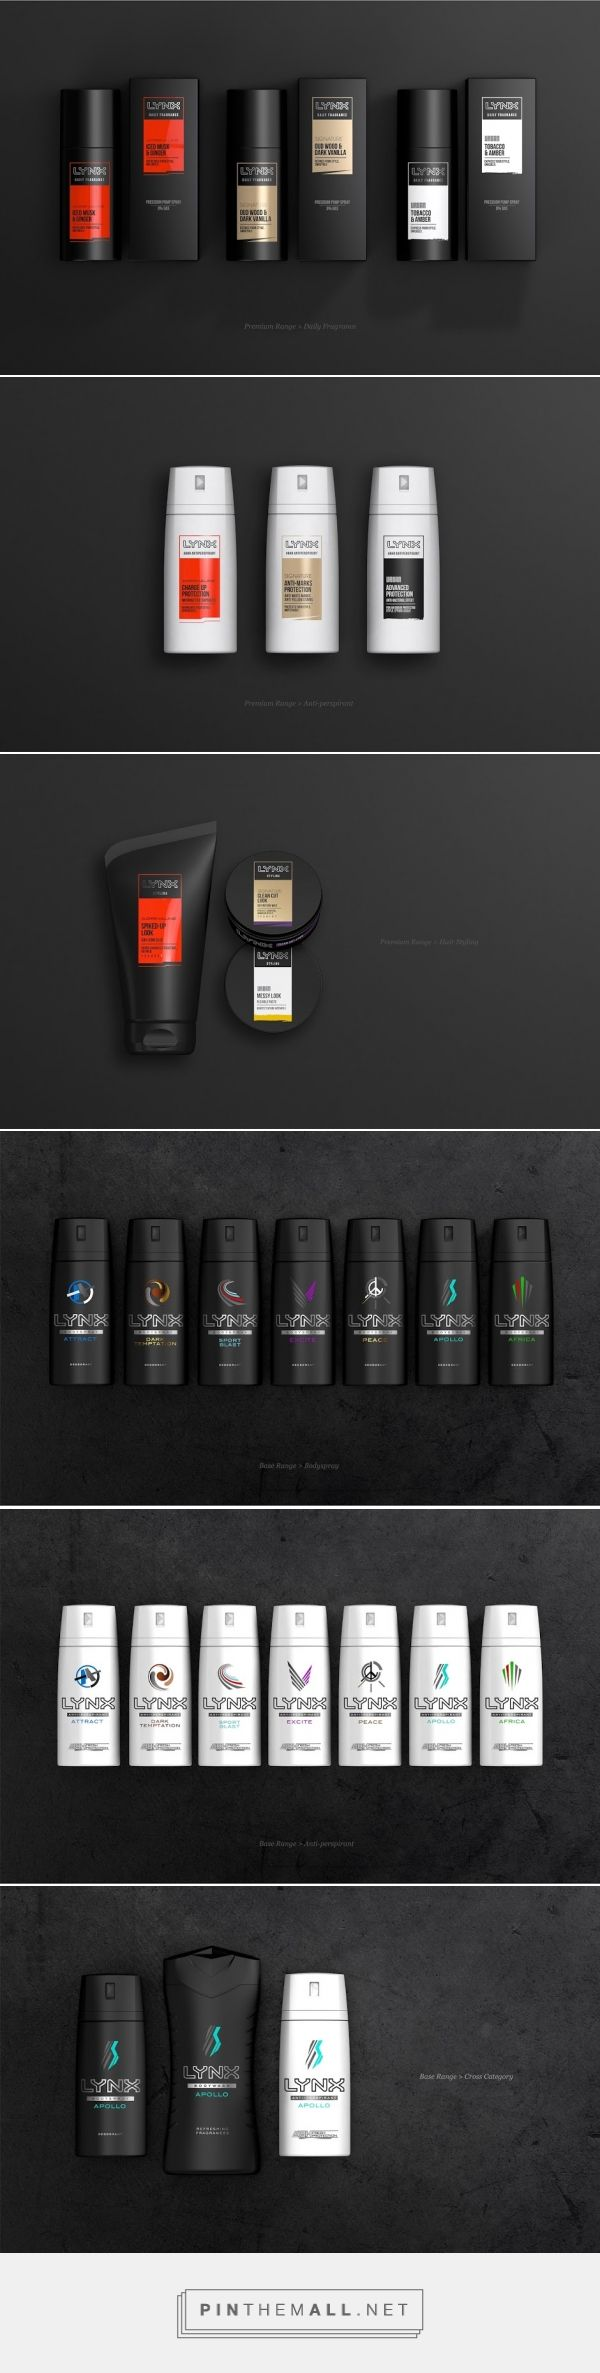 Lynx (Axe) Re-design - Packaging of the World - Creative Package Design Gallery - http://www.packagingoftheworld.com/2016/04/lynx-axe-re-design.html